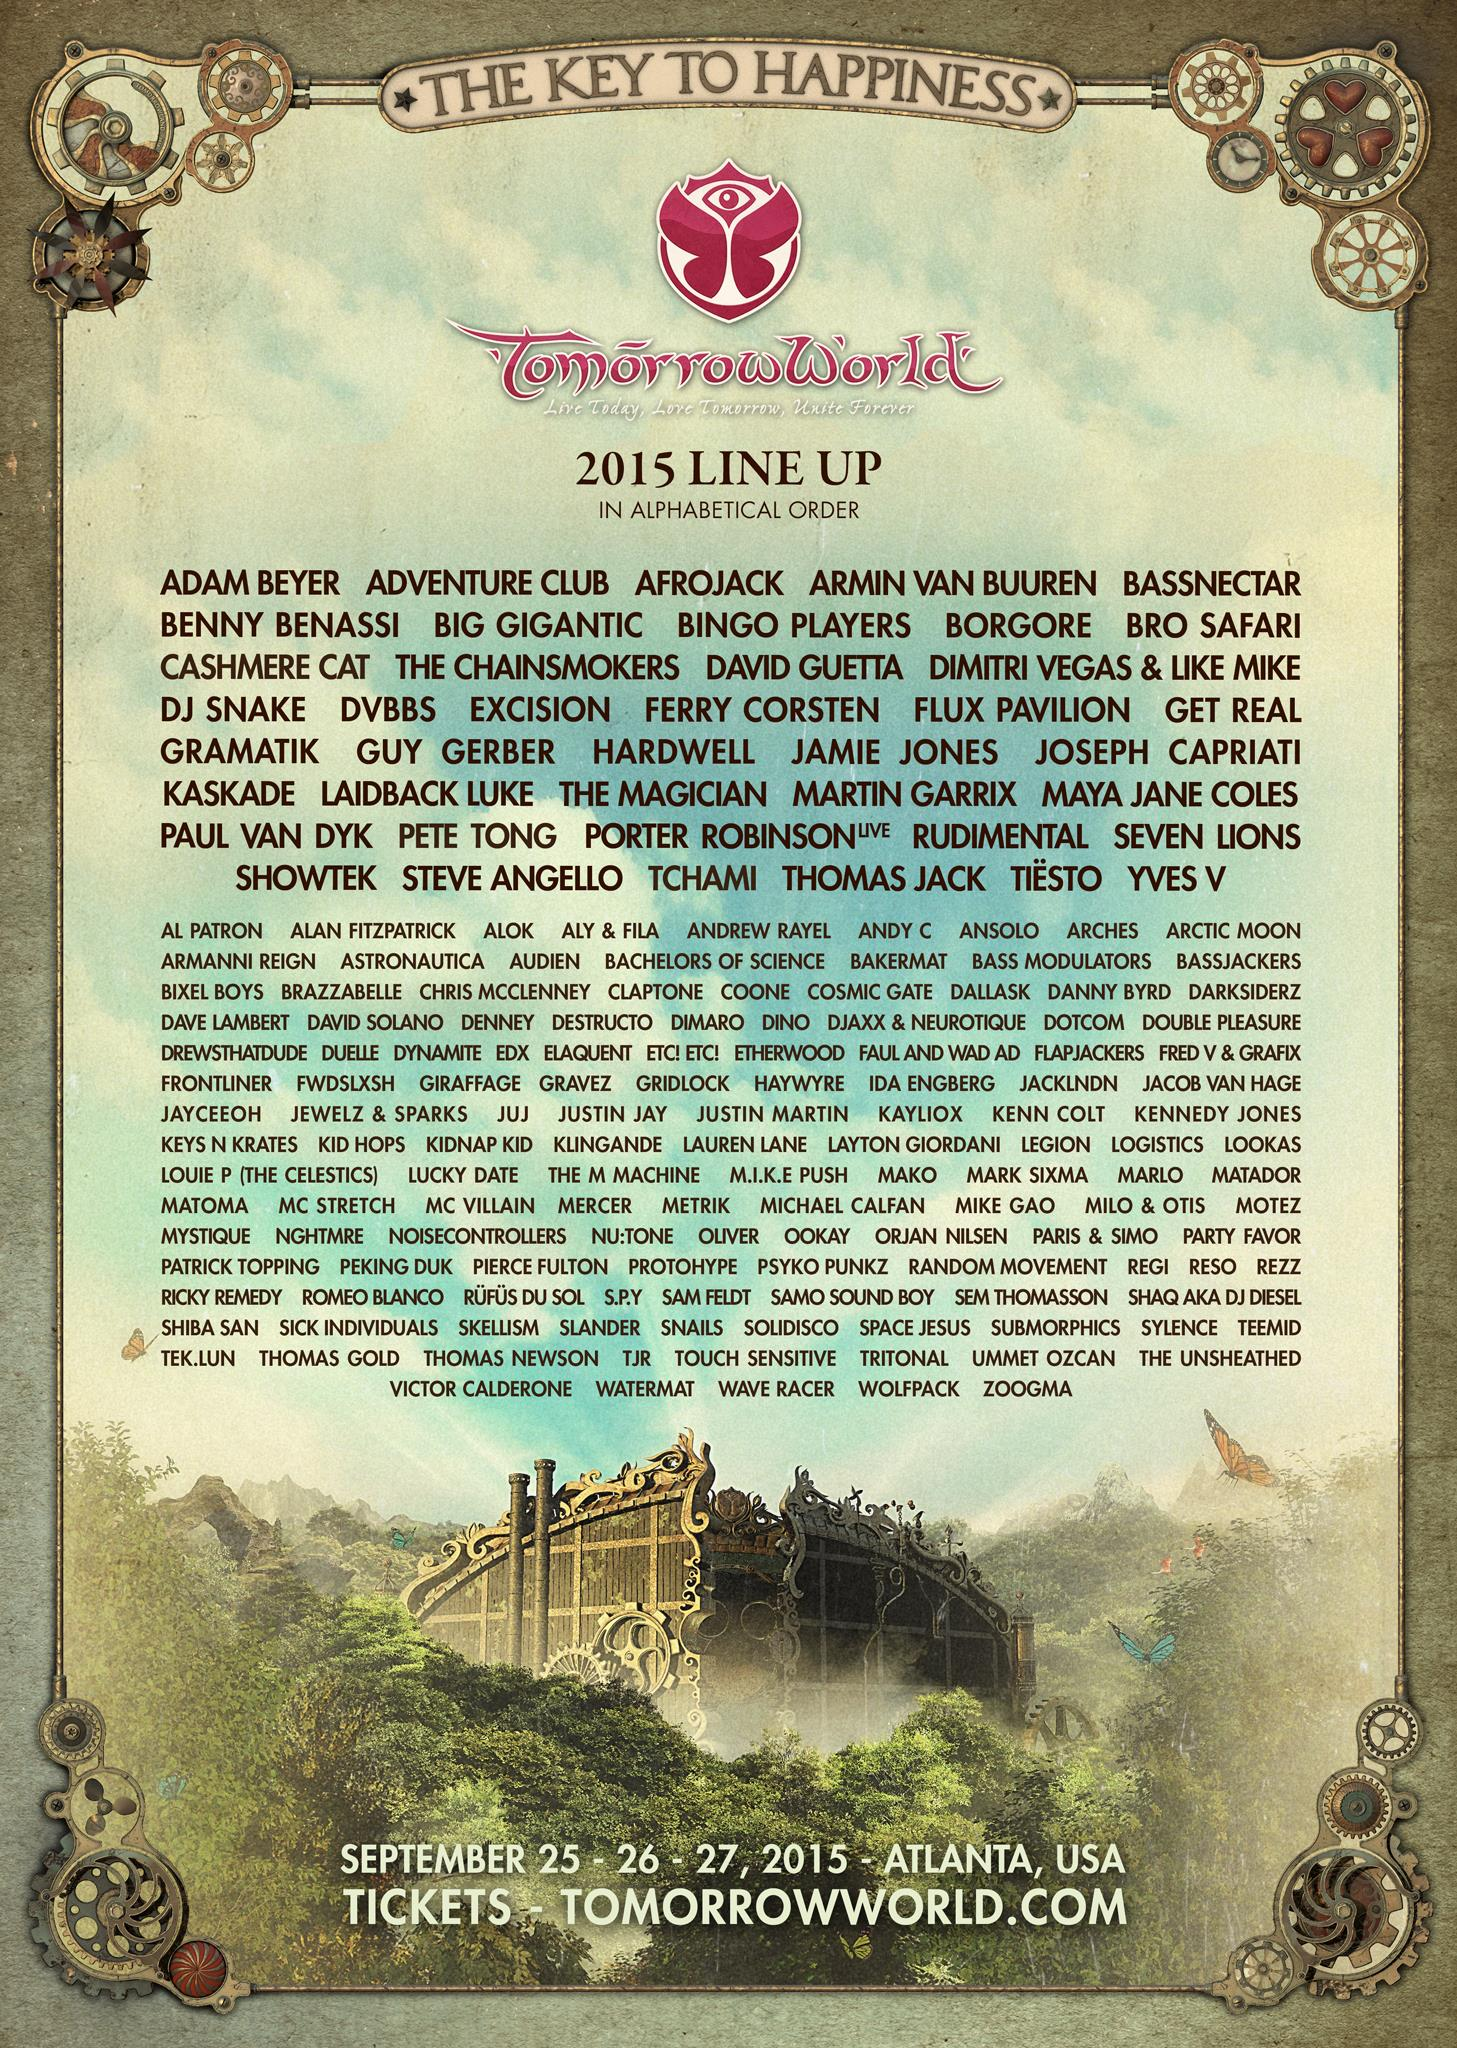 Tomorrowworld lineup